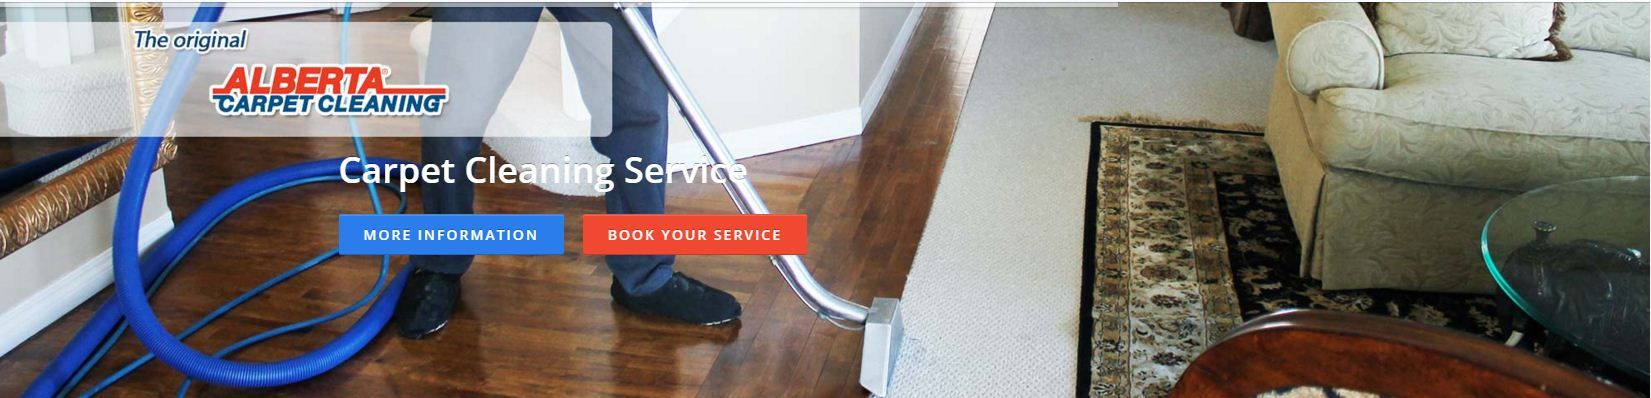 Duct Cleaning Calgary Carpet Cleaning Service Duct Cleaning Furnace Cleaning